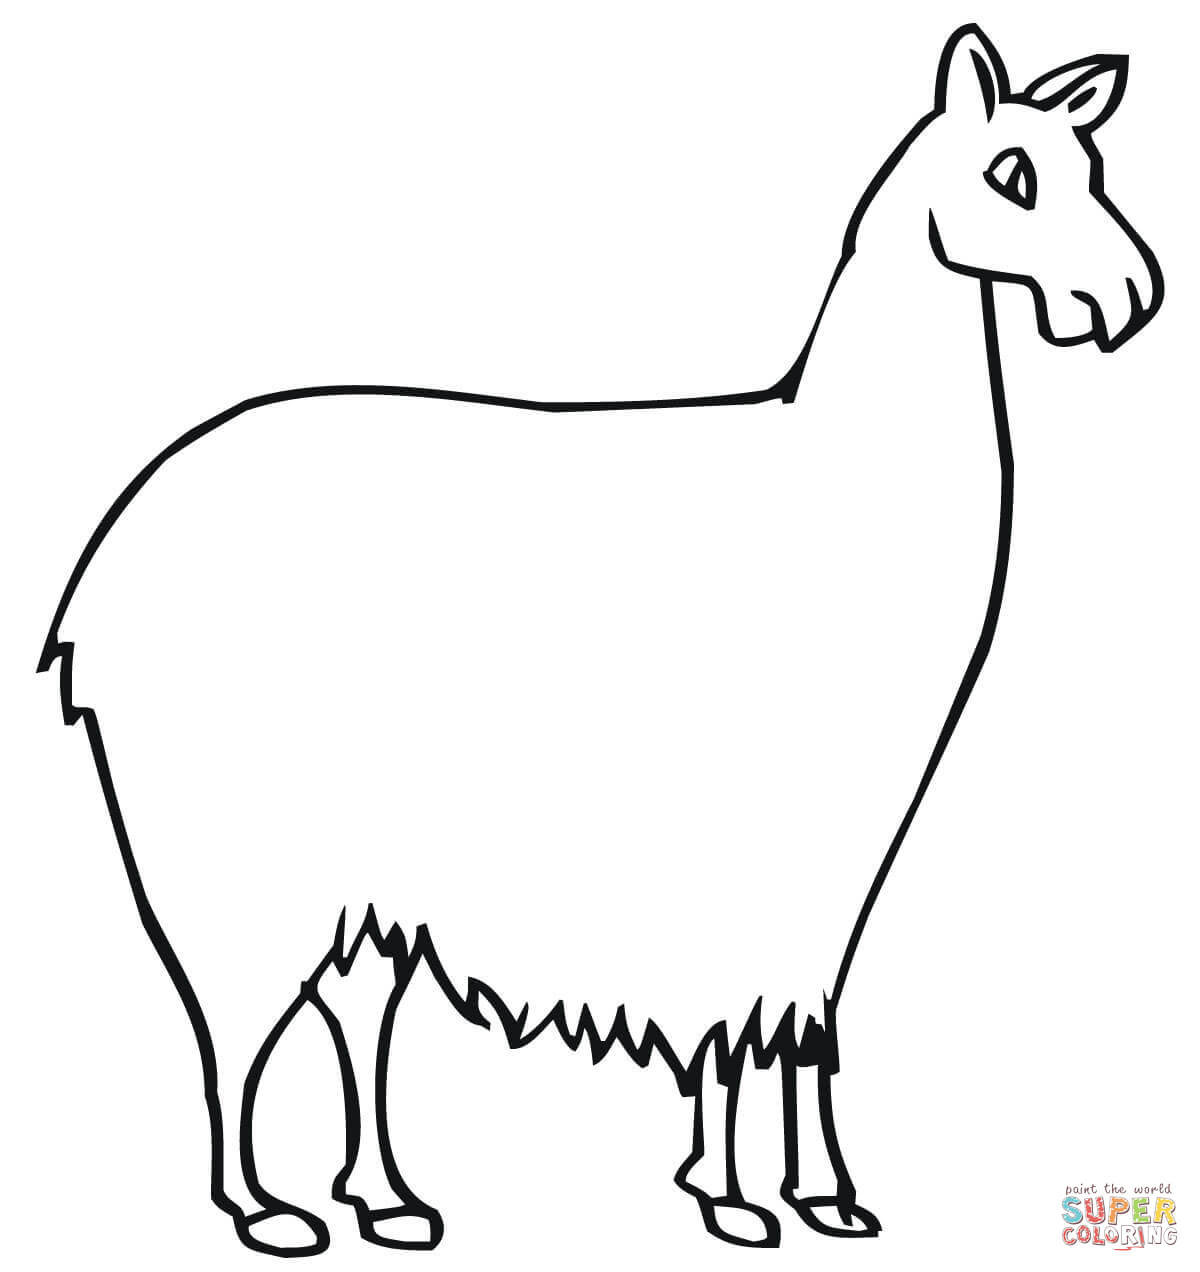 Llama South American Camelid coloring page | Free Printable ...